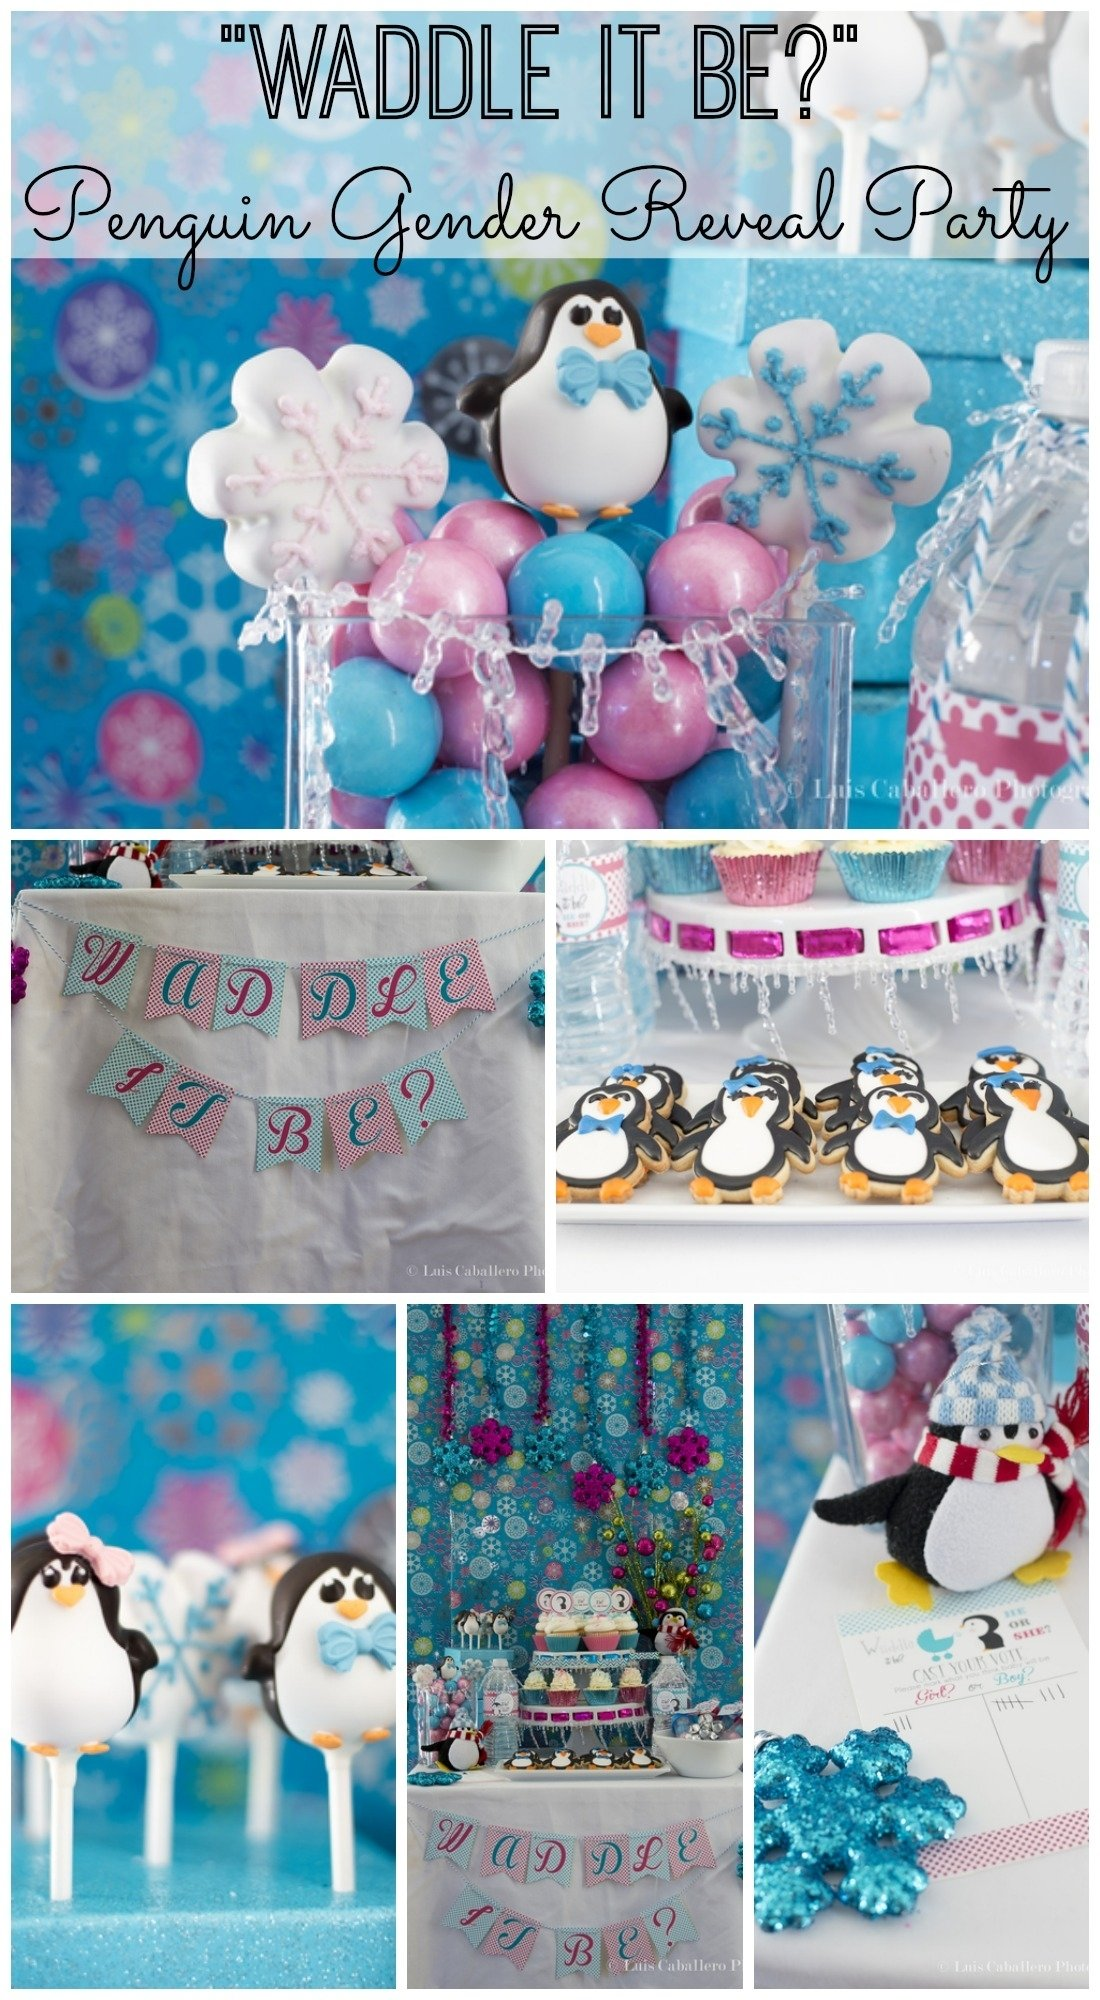 10 Most Popular Baby Shower Gender Reveal Ideas waddle it be gender reveal baby shower great idea for winter see 2020